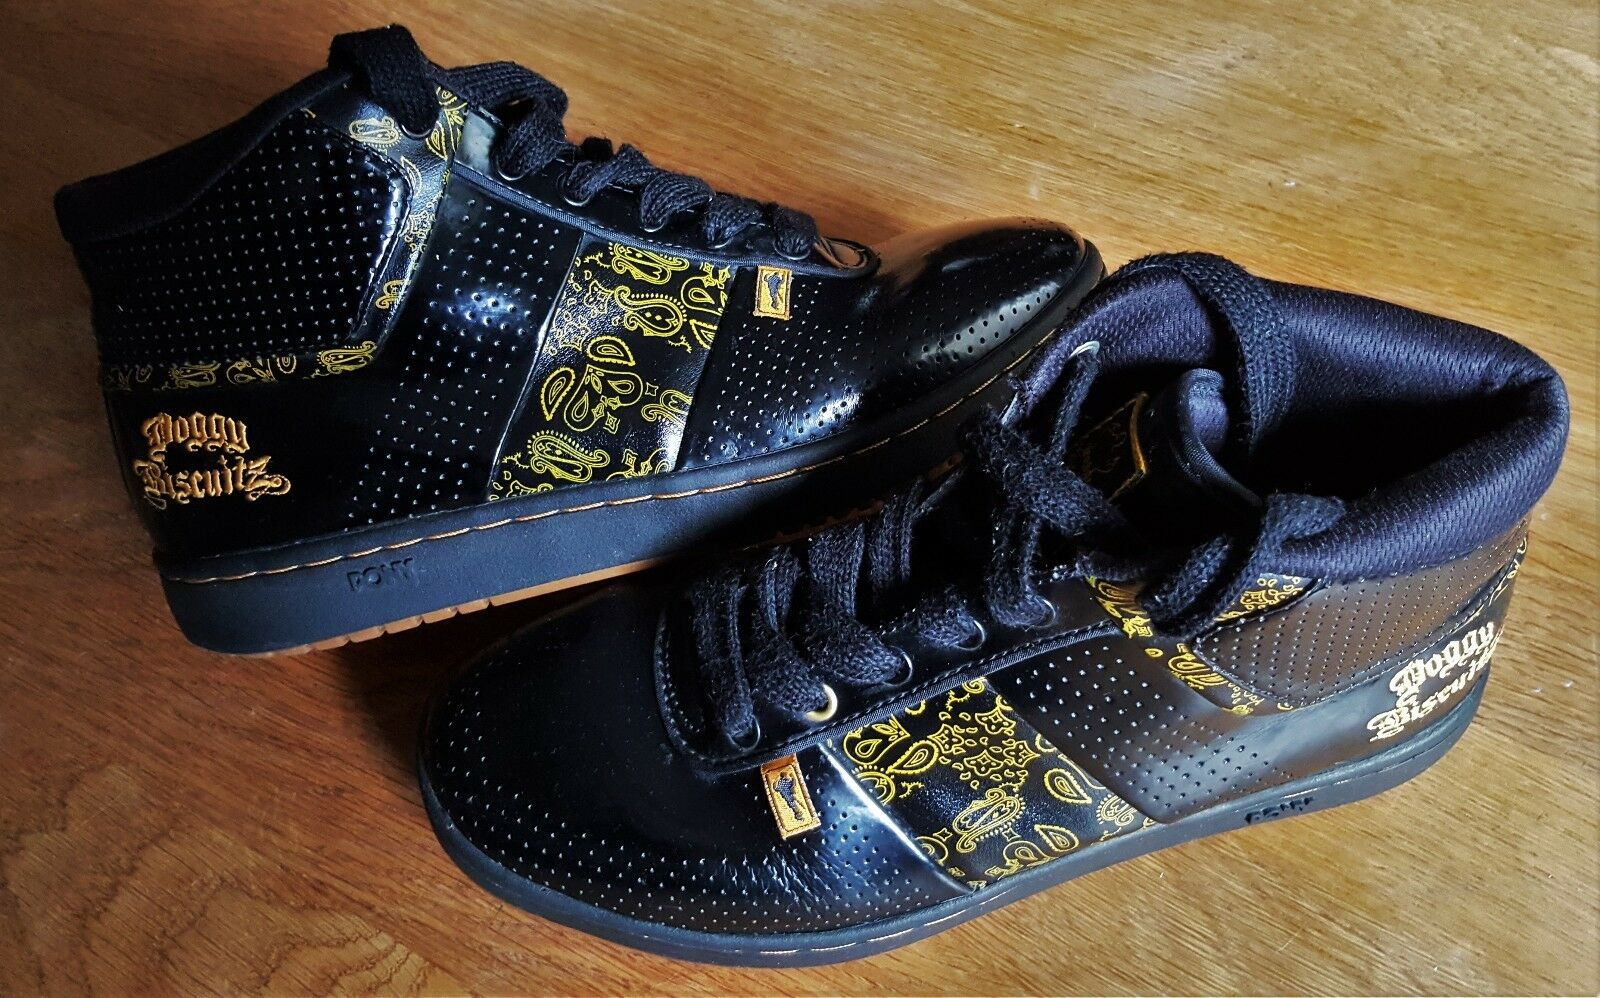 SNOOP DOGG DOGGY BISCUITZ SNEAKERS Uomo SHOES HIP HOP RaRe 2006 !!!